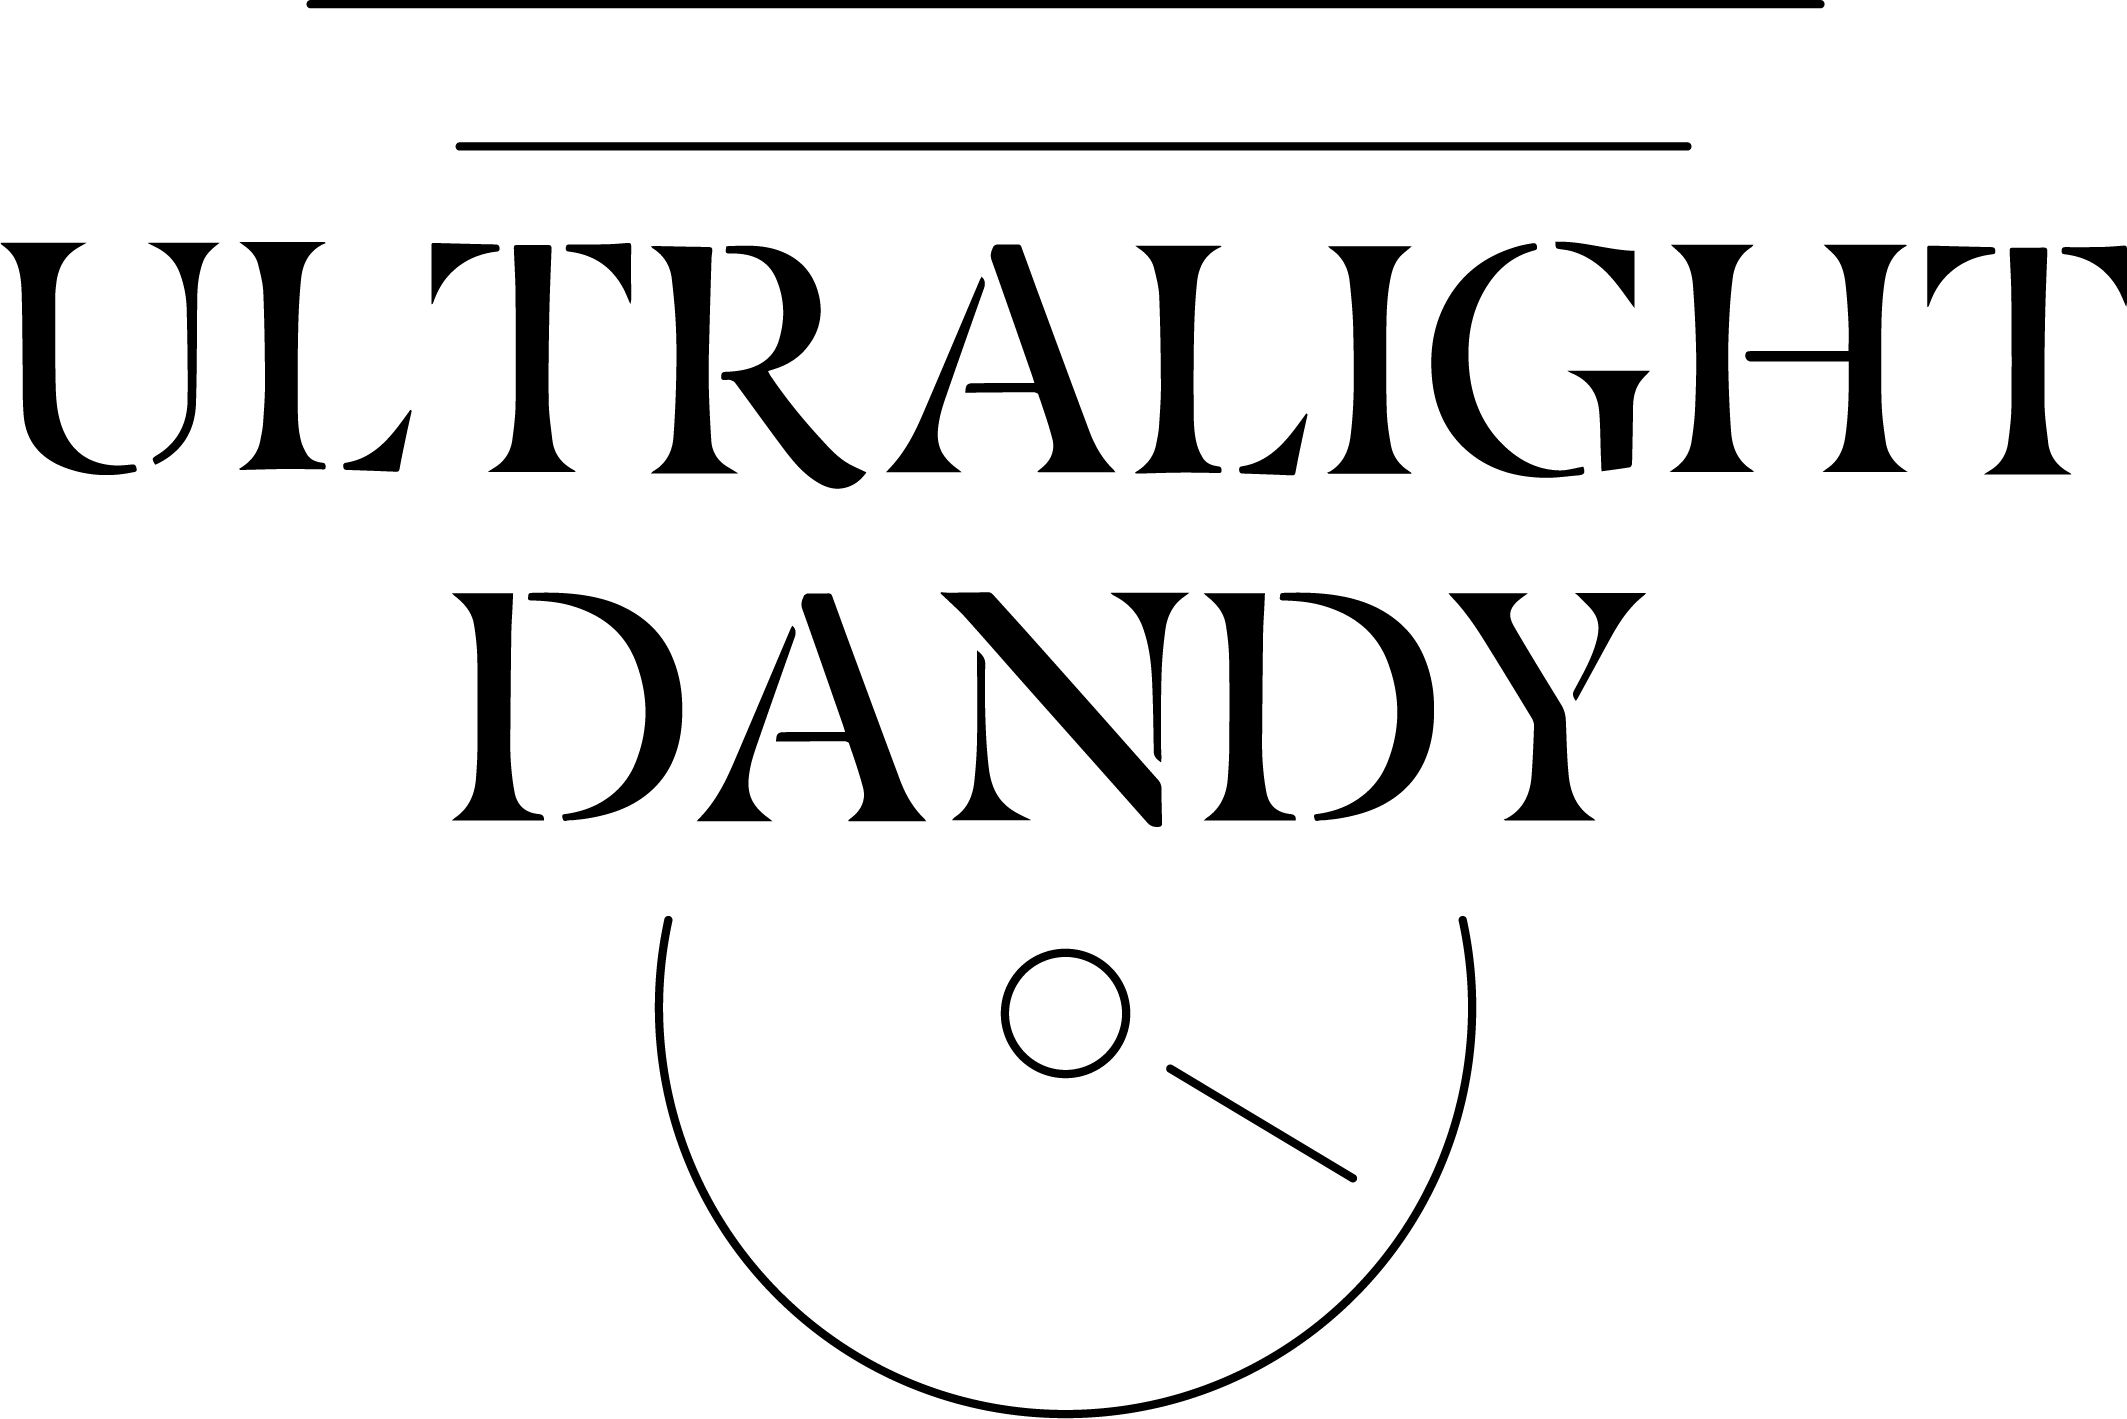 Ultralight Dandy